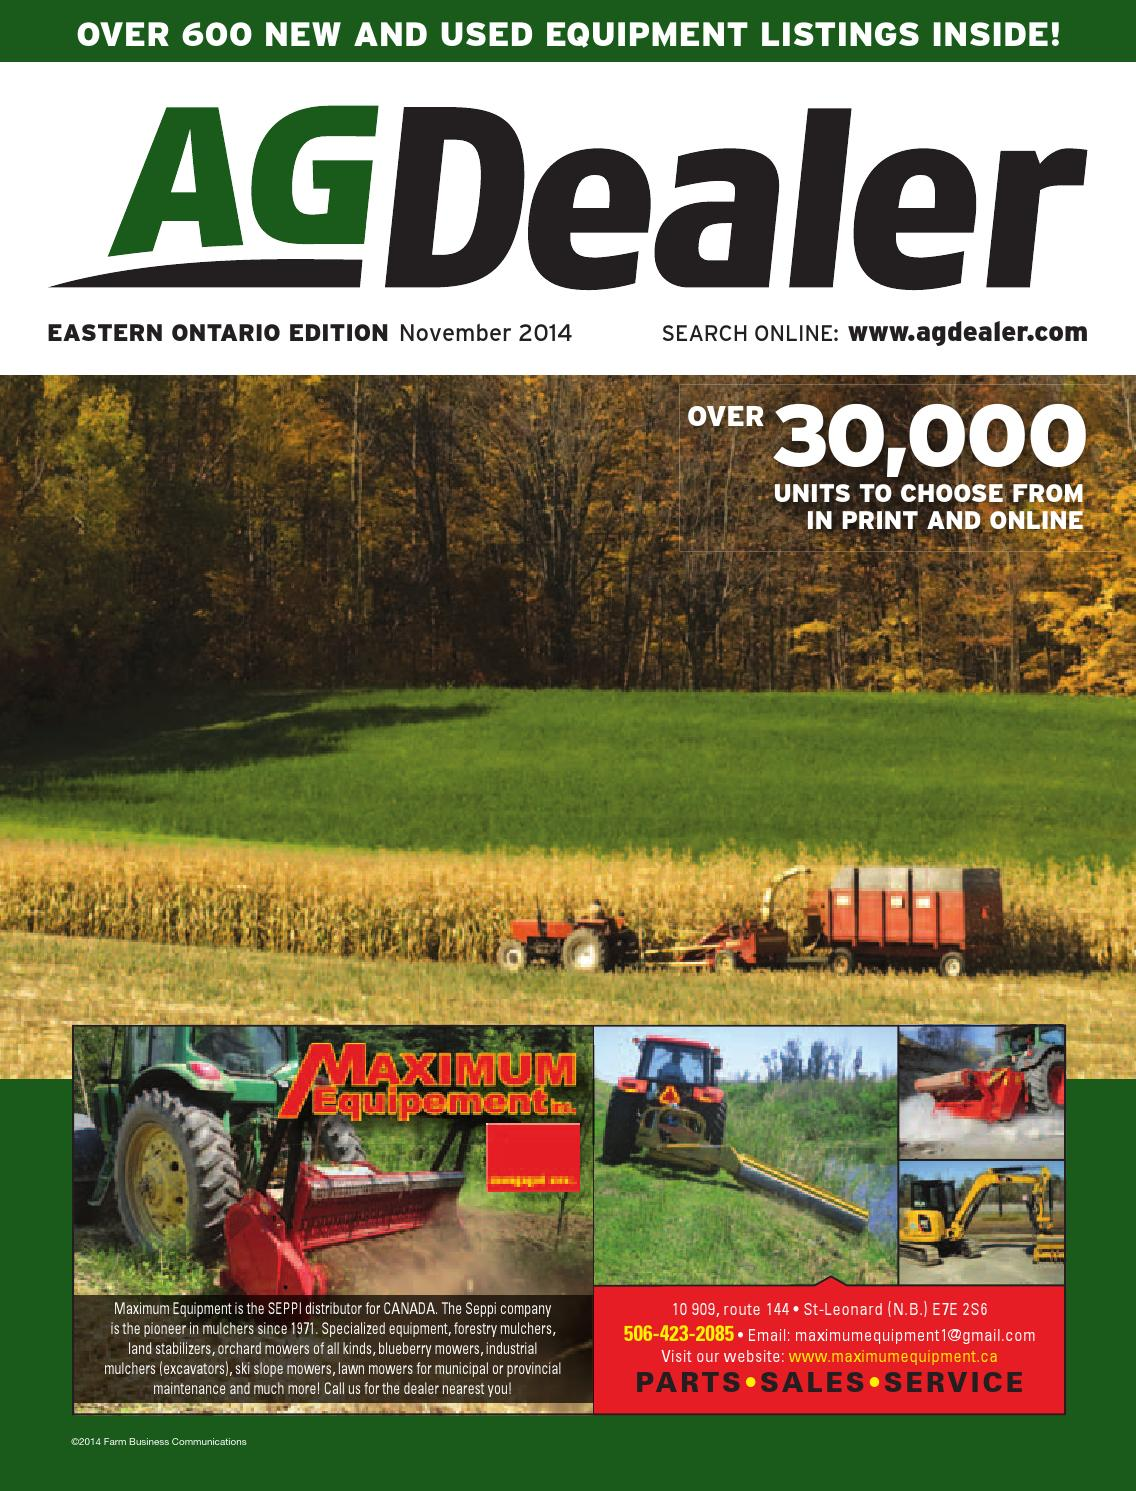 AGDealer Eastern Ontario Edition, November 2014